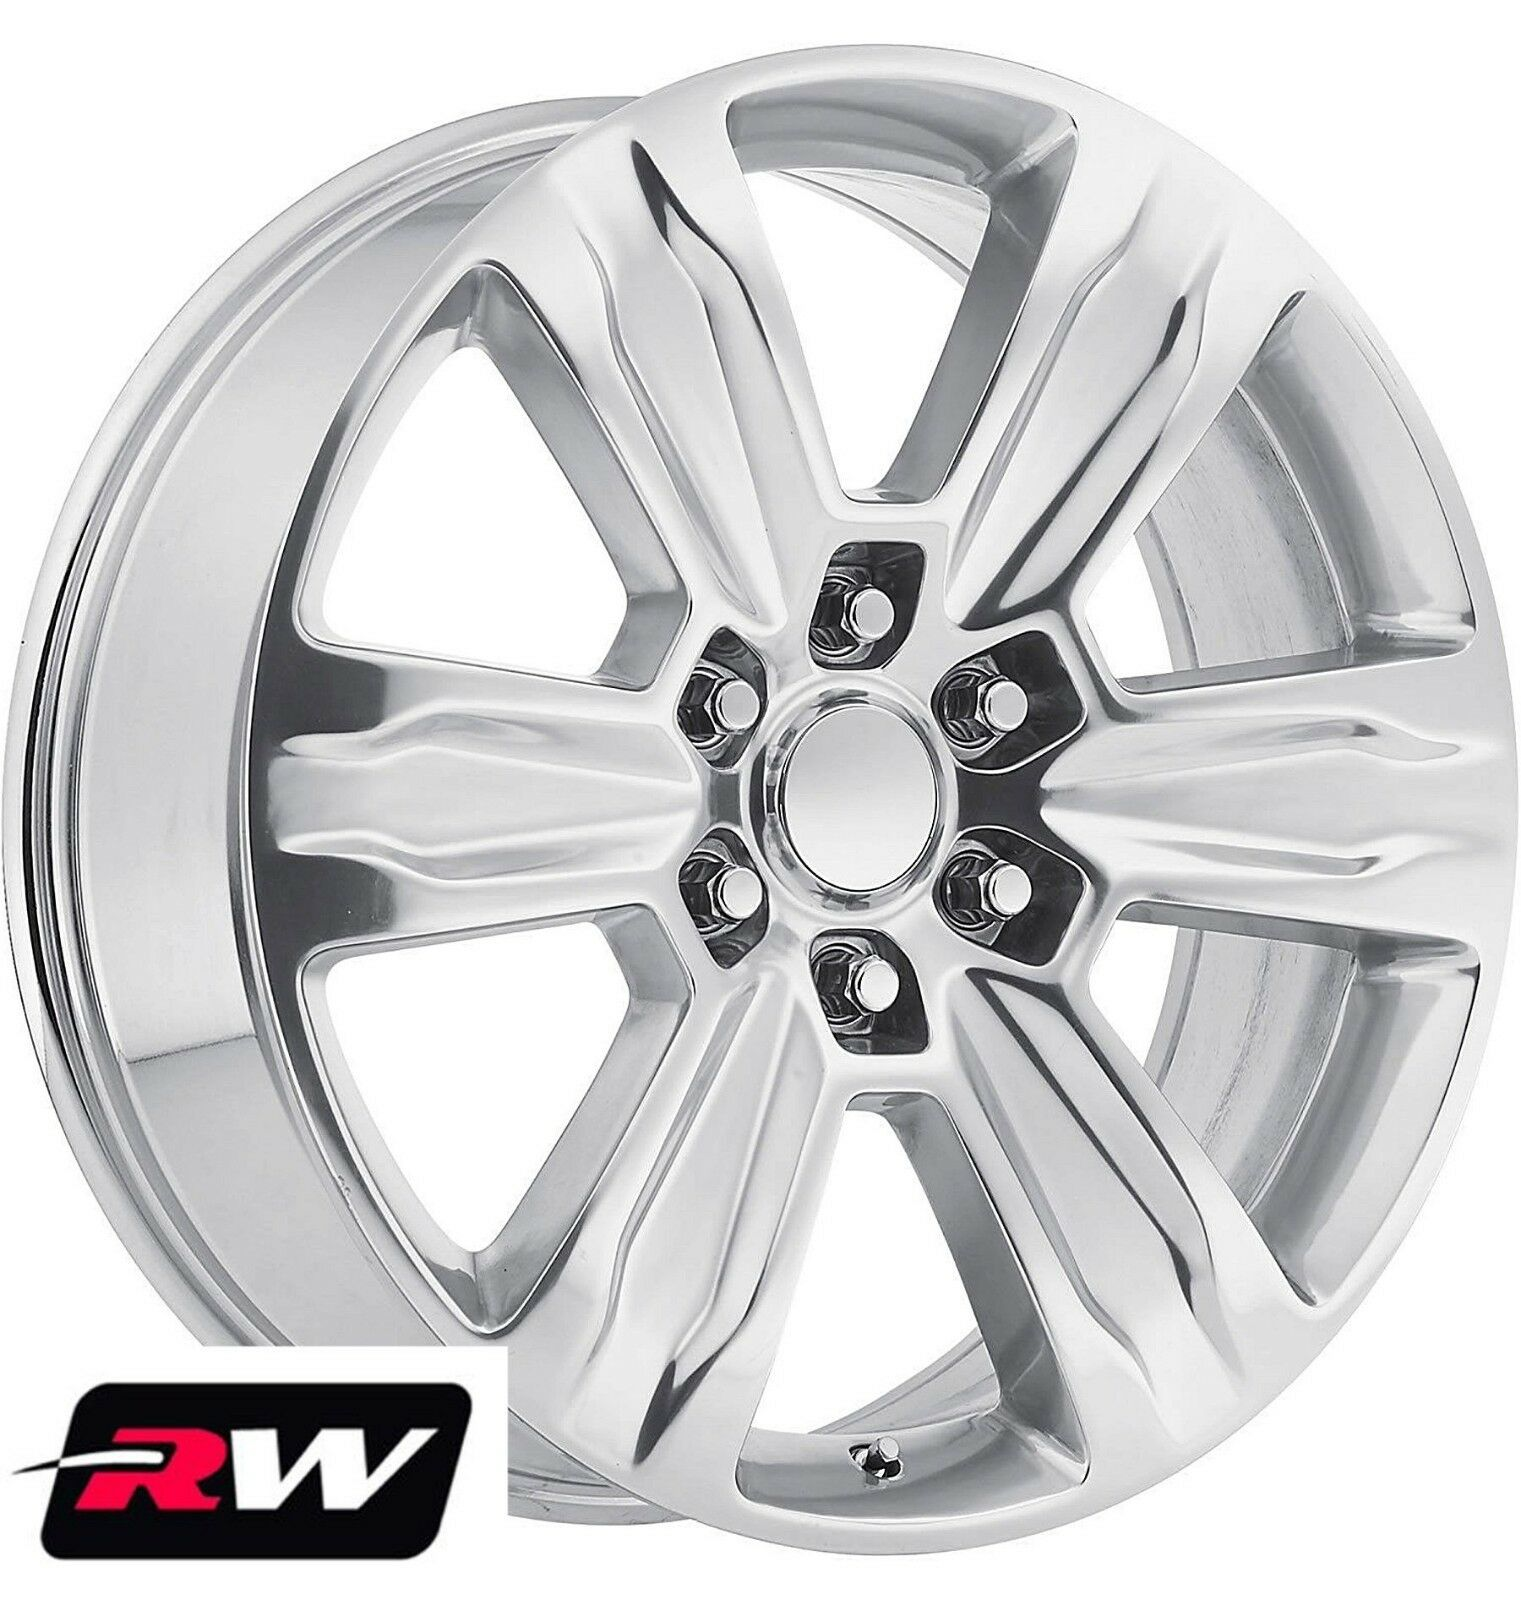 Ford F150 Wheels >> Ford F 150 Oe Factory Replica Wheels 2015 2016 2017 Platinum 22 Inch Polished